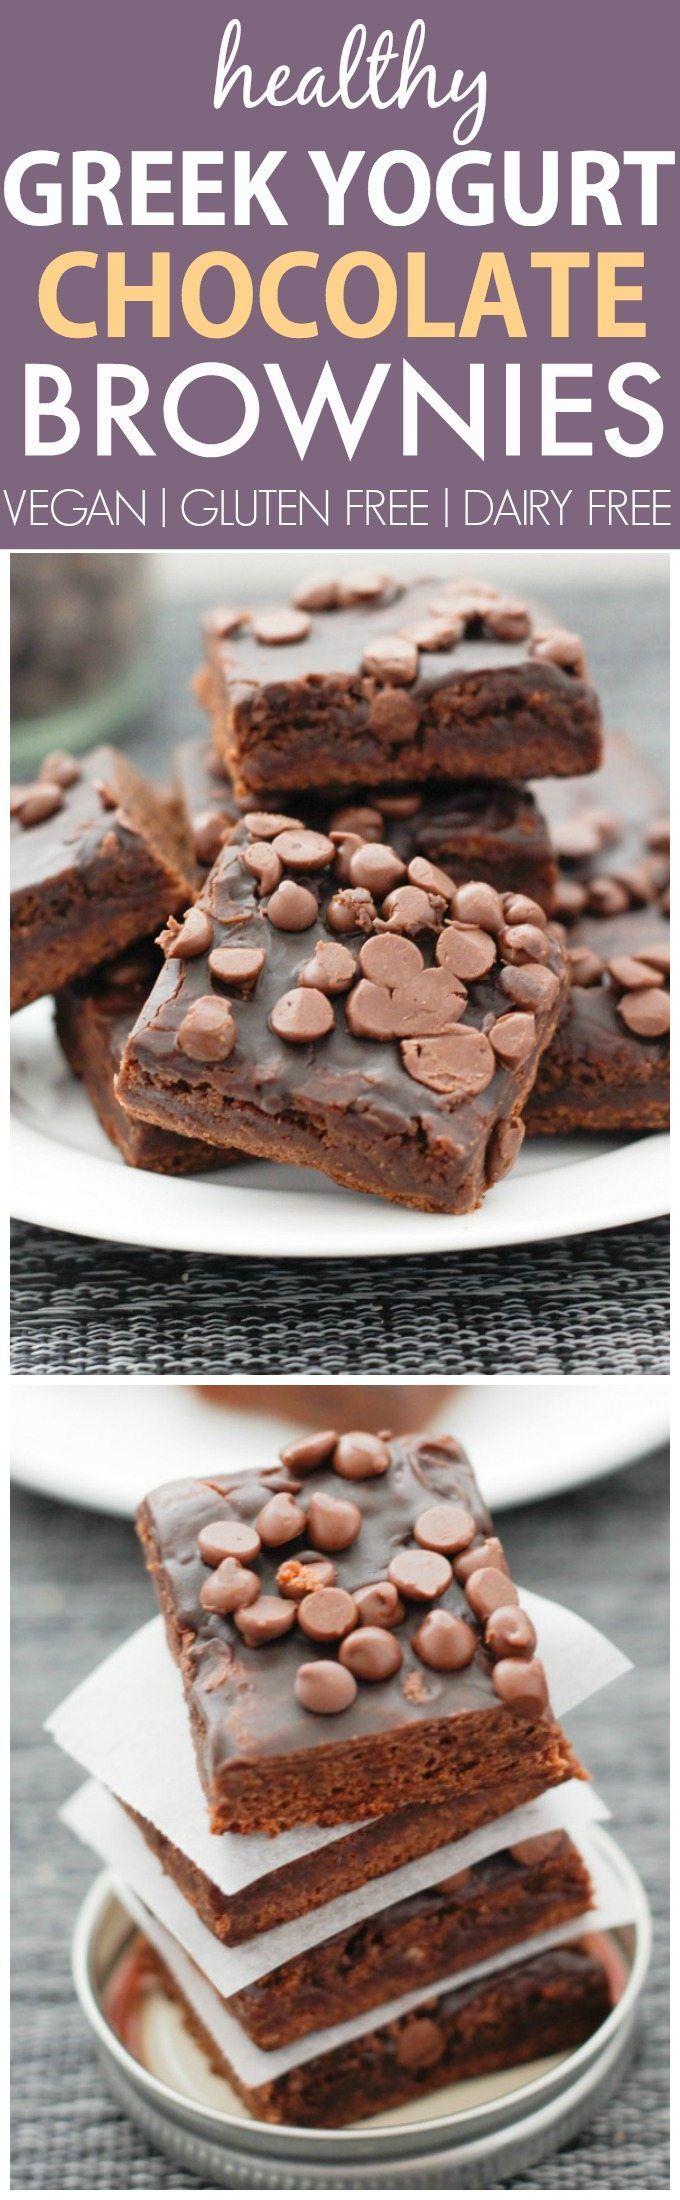 Healthy Greek Yogurt Chocolate Brownies- Moist, delicious and LOADED with chocolate goodness, these brownies have NO butter, oil or sugar, but you'd never tell! {vegan, gluten free, dairy free recipe option}- thebigmansworld.com